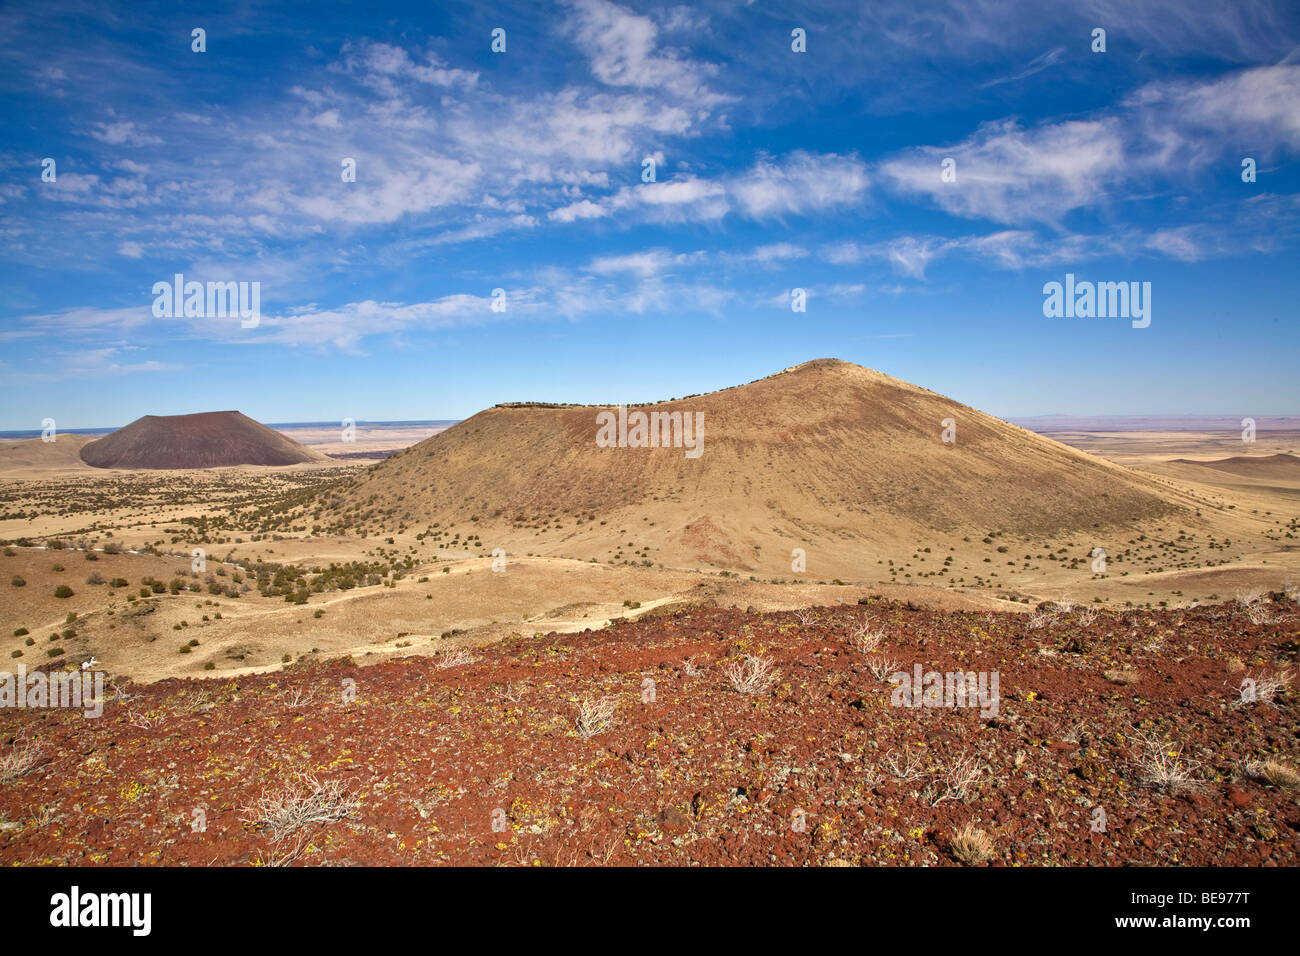 Volcanic cinder cones of San Francisco Volcanic Field, view from Red Hill with SP Crater on left, near Flagstaff, - Stock Image